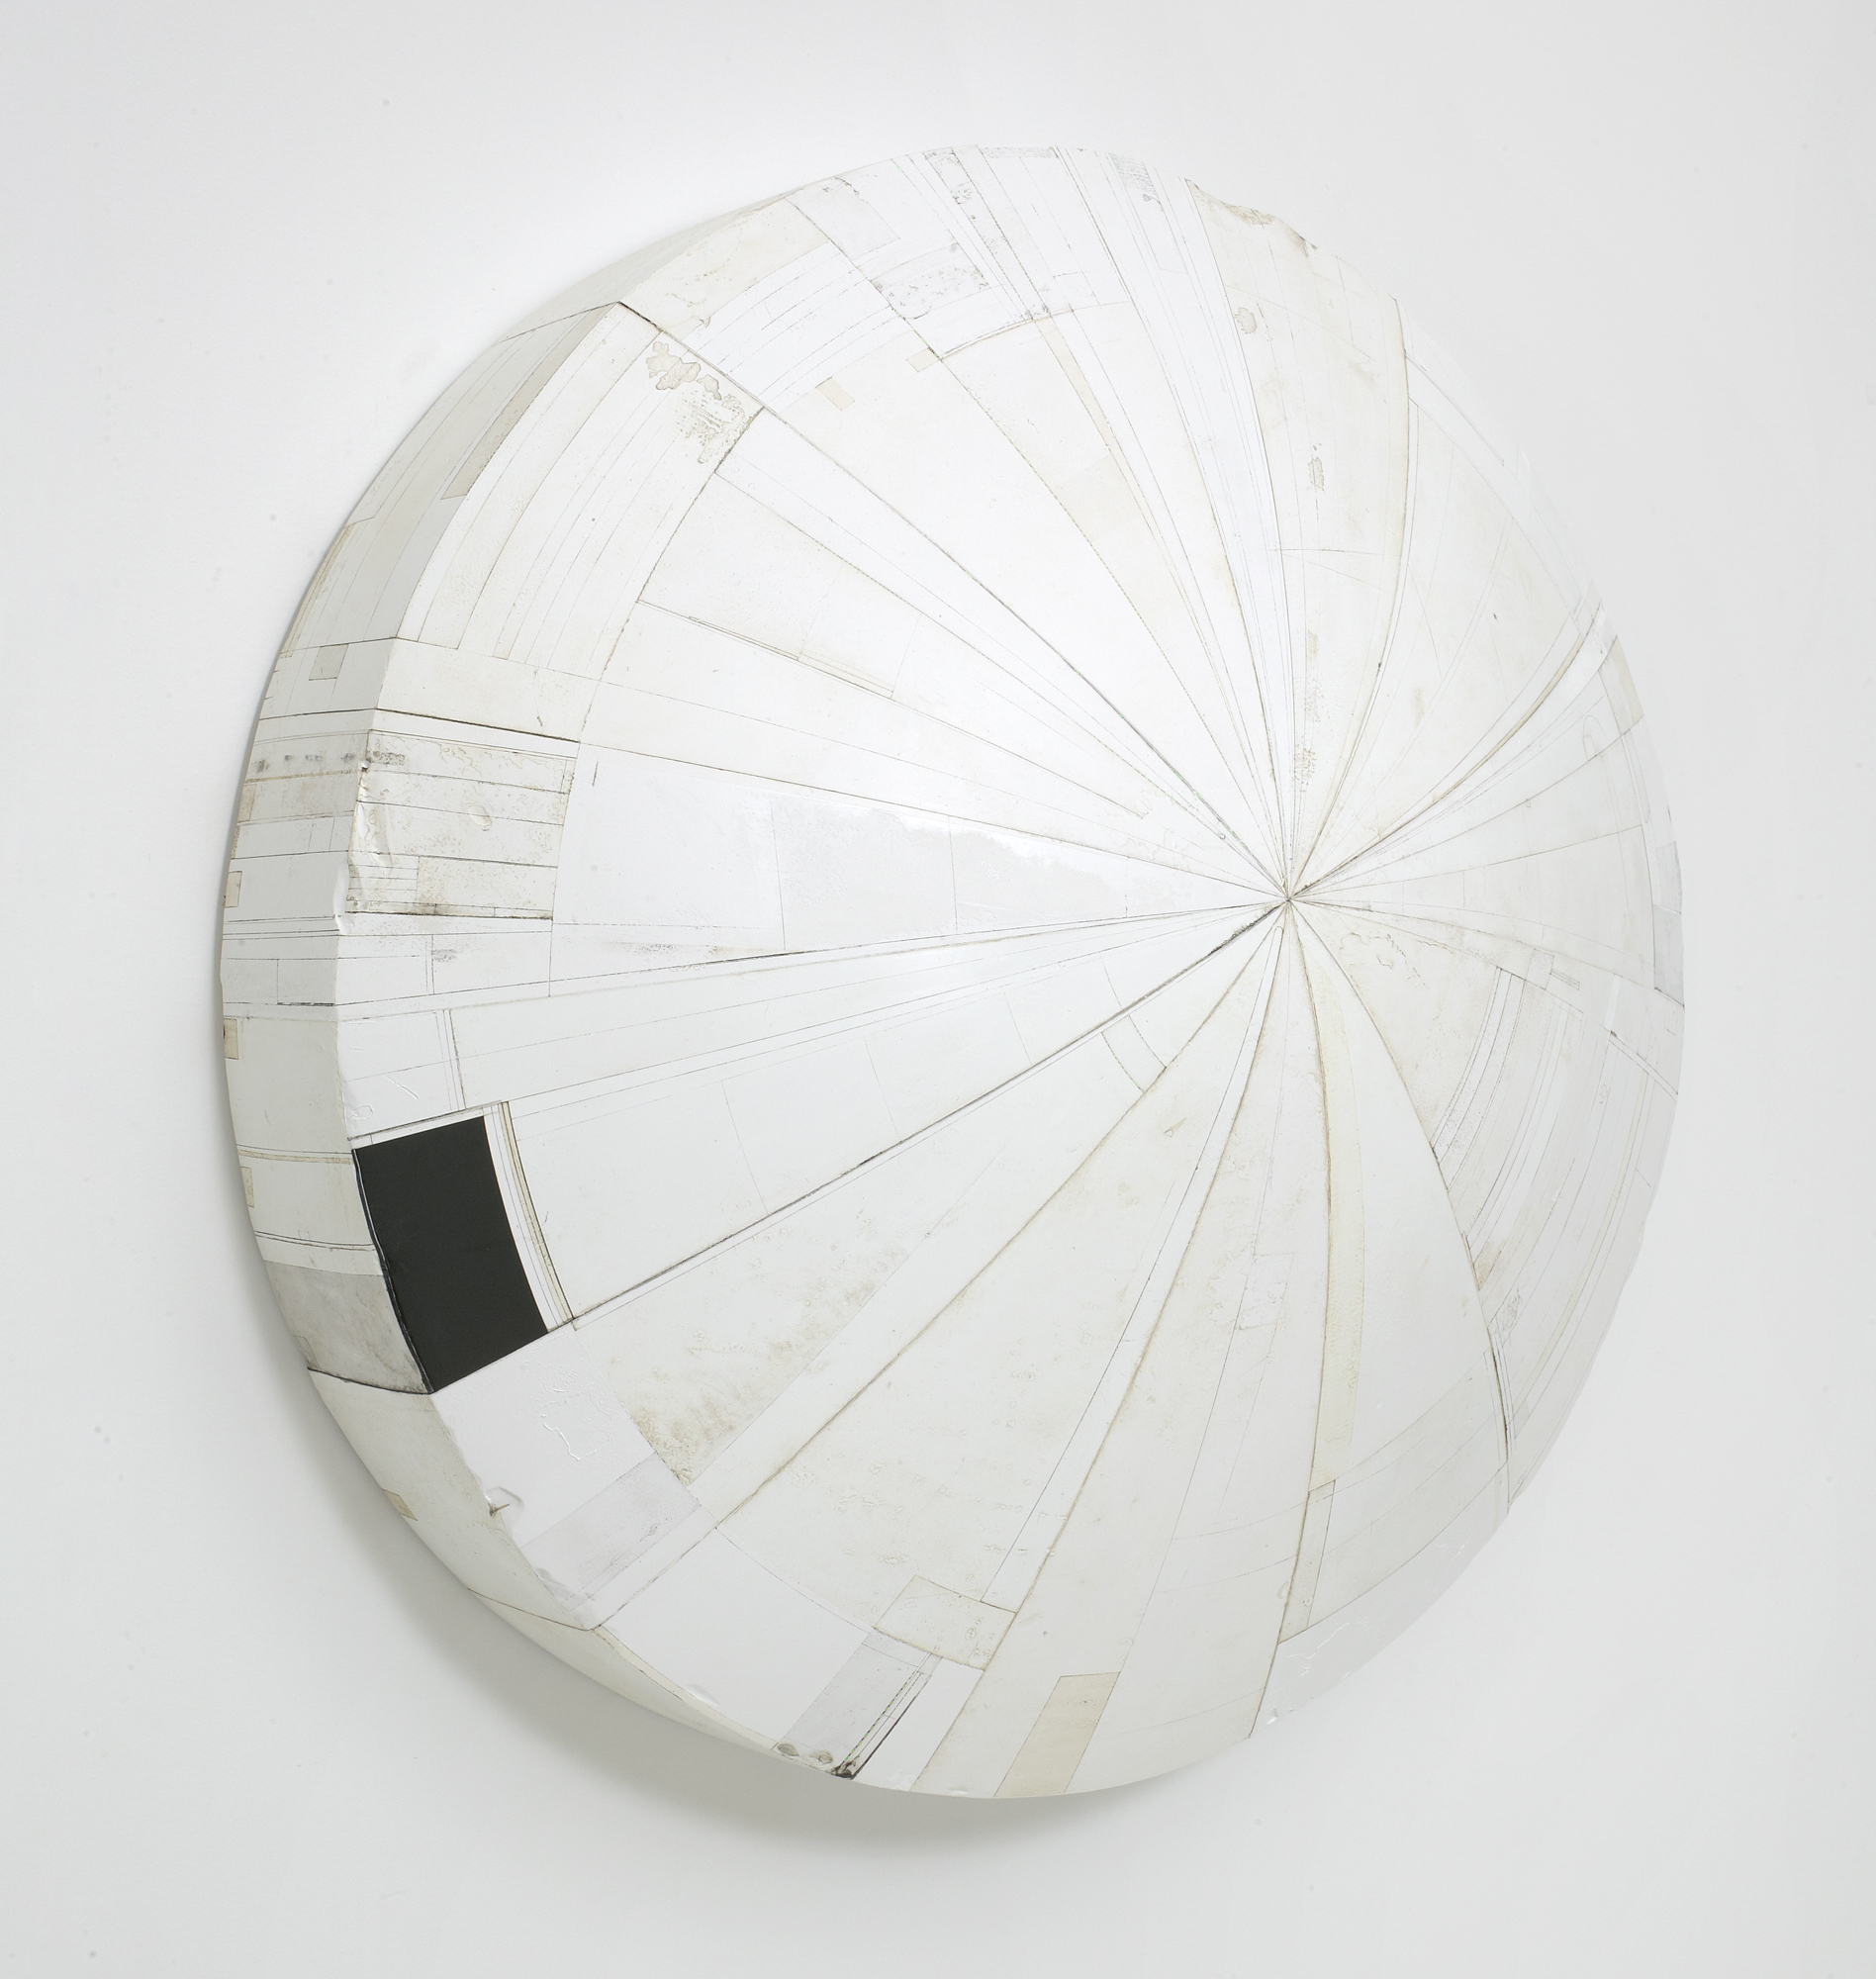 #53, 2005-2008, painted plaster, 38 x 14.5 in, $22,500